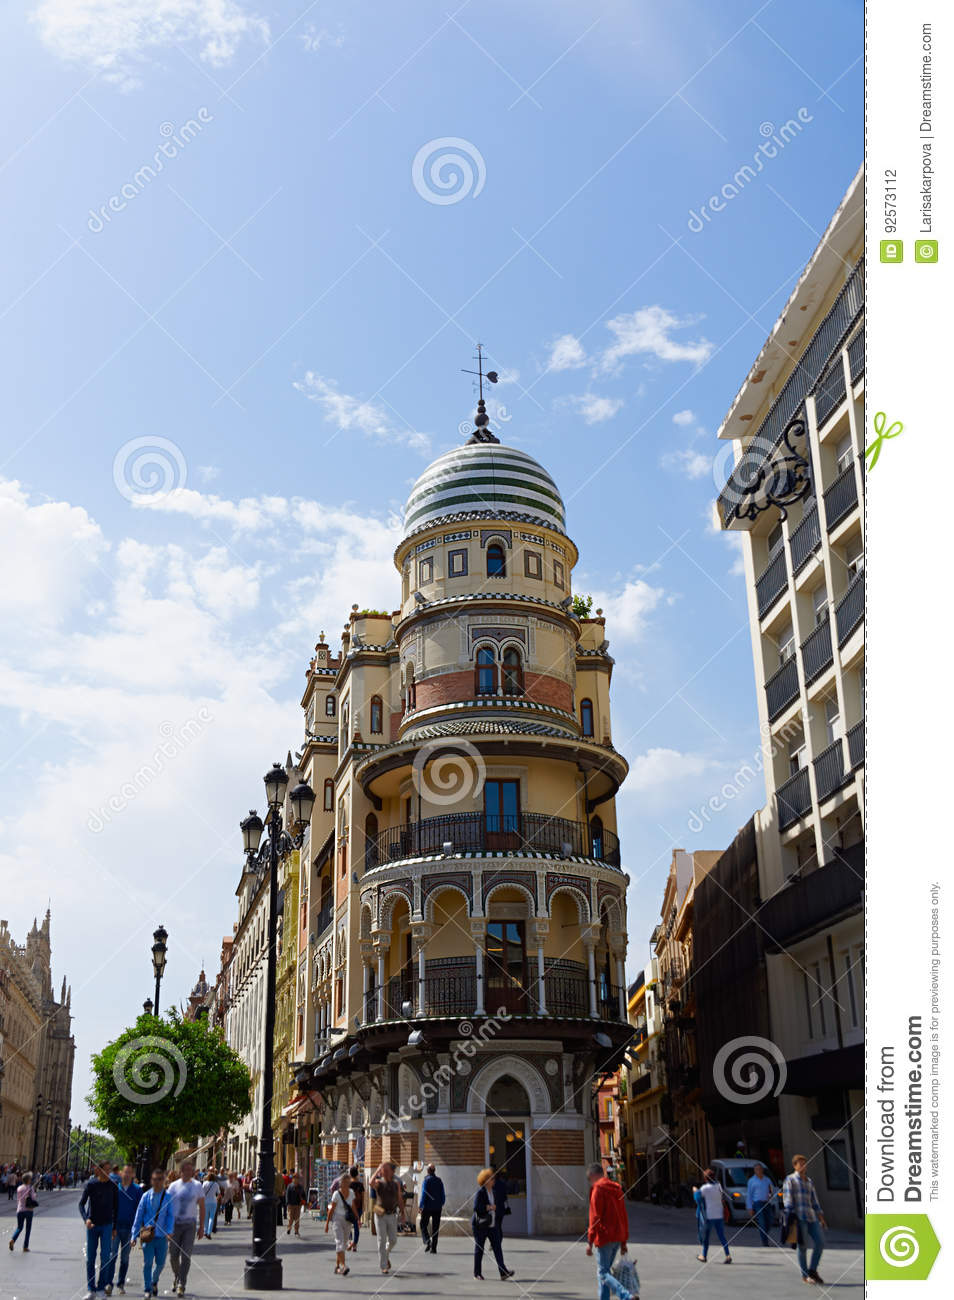 Historic buildings and monuments of Seville, Spain. Spanish architectural styles of Gothic and Mudejar, Baroque